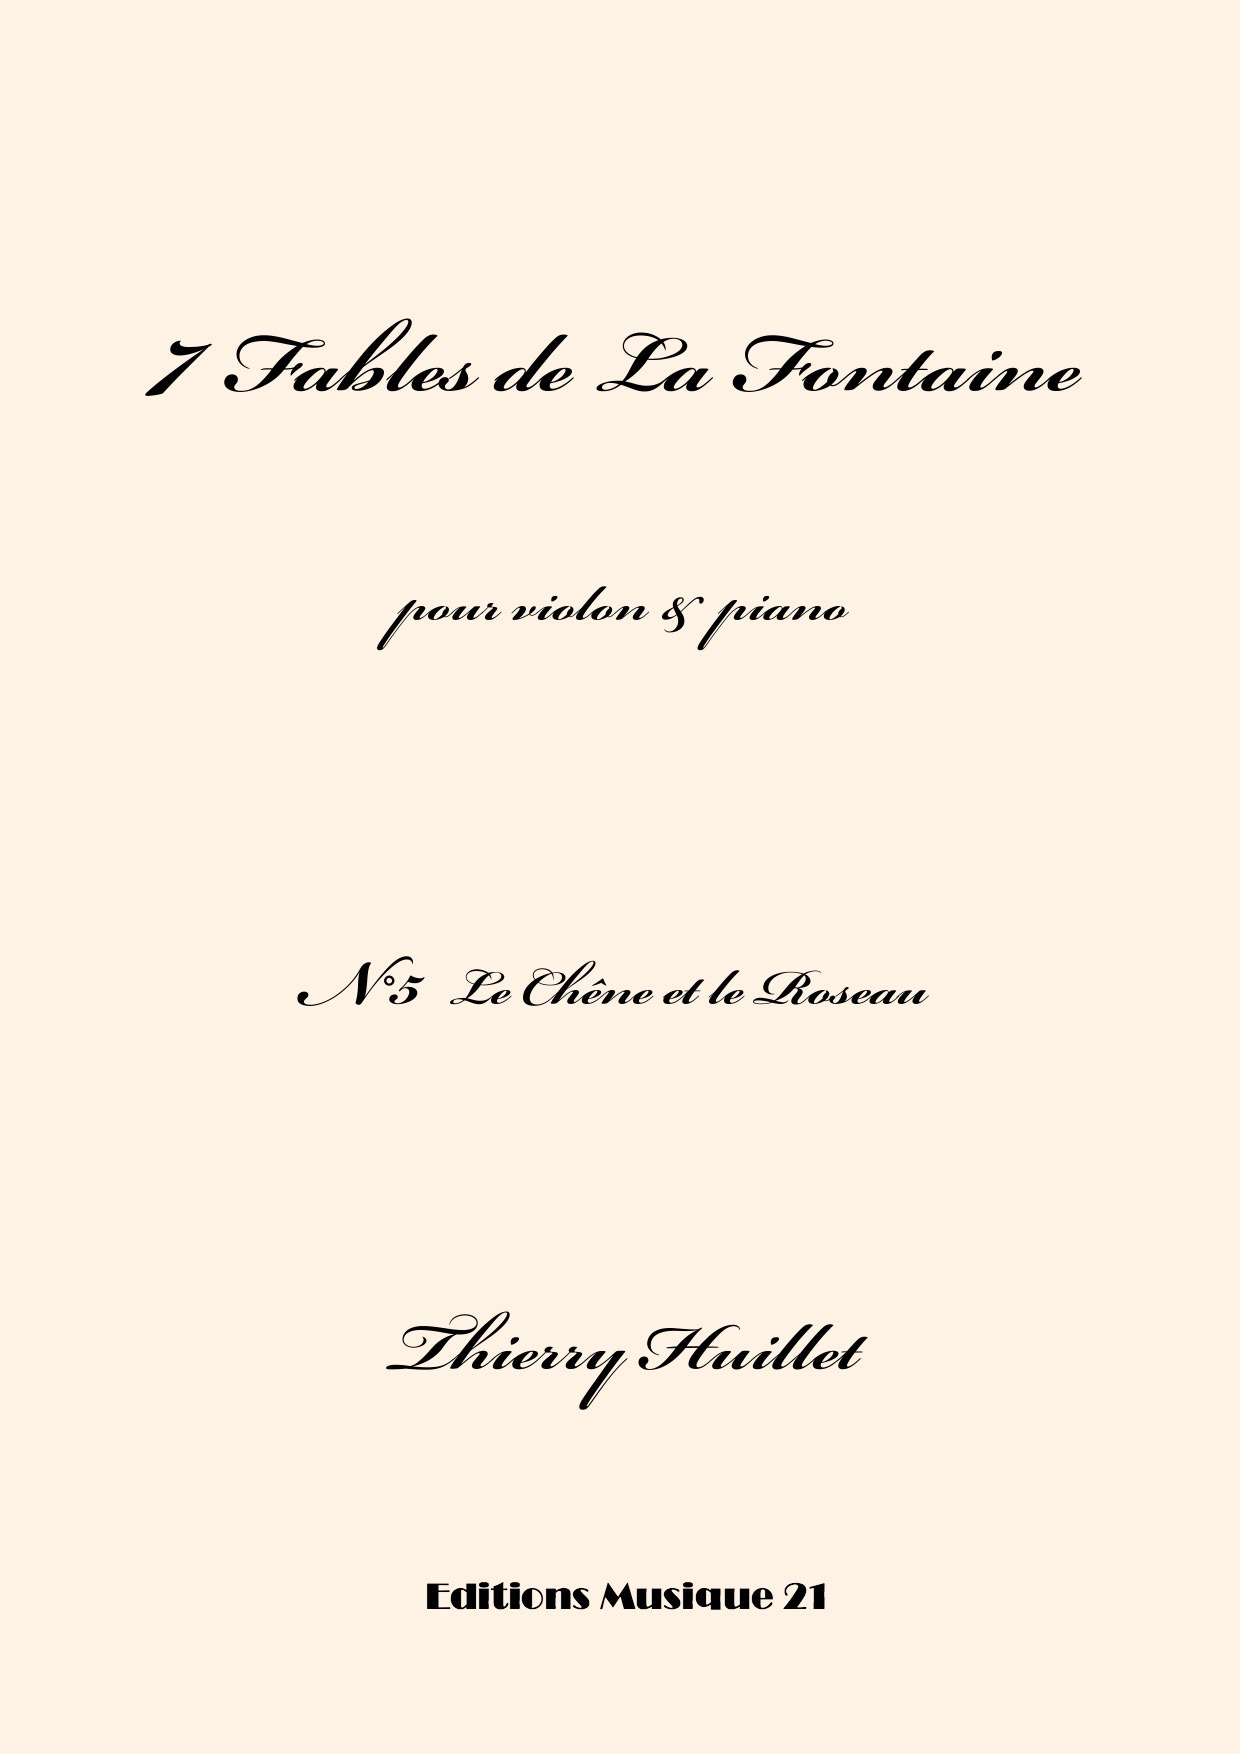 Thierry HUILLET – Le Chêne Et Le Roseau, N°5 From 7 Fables De La Fontaine, For Violin And Piano